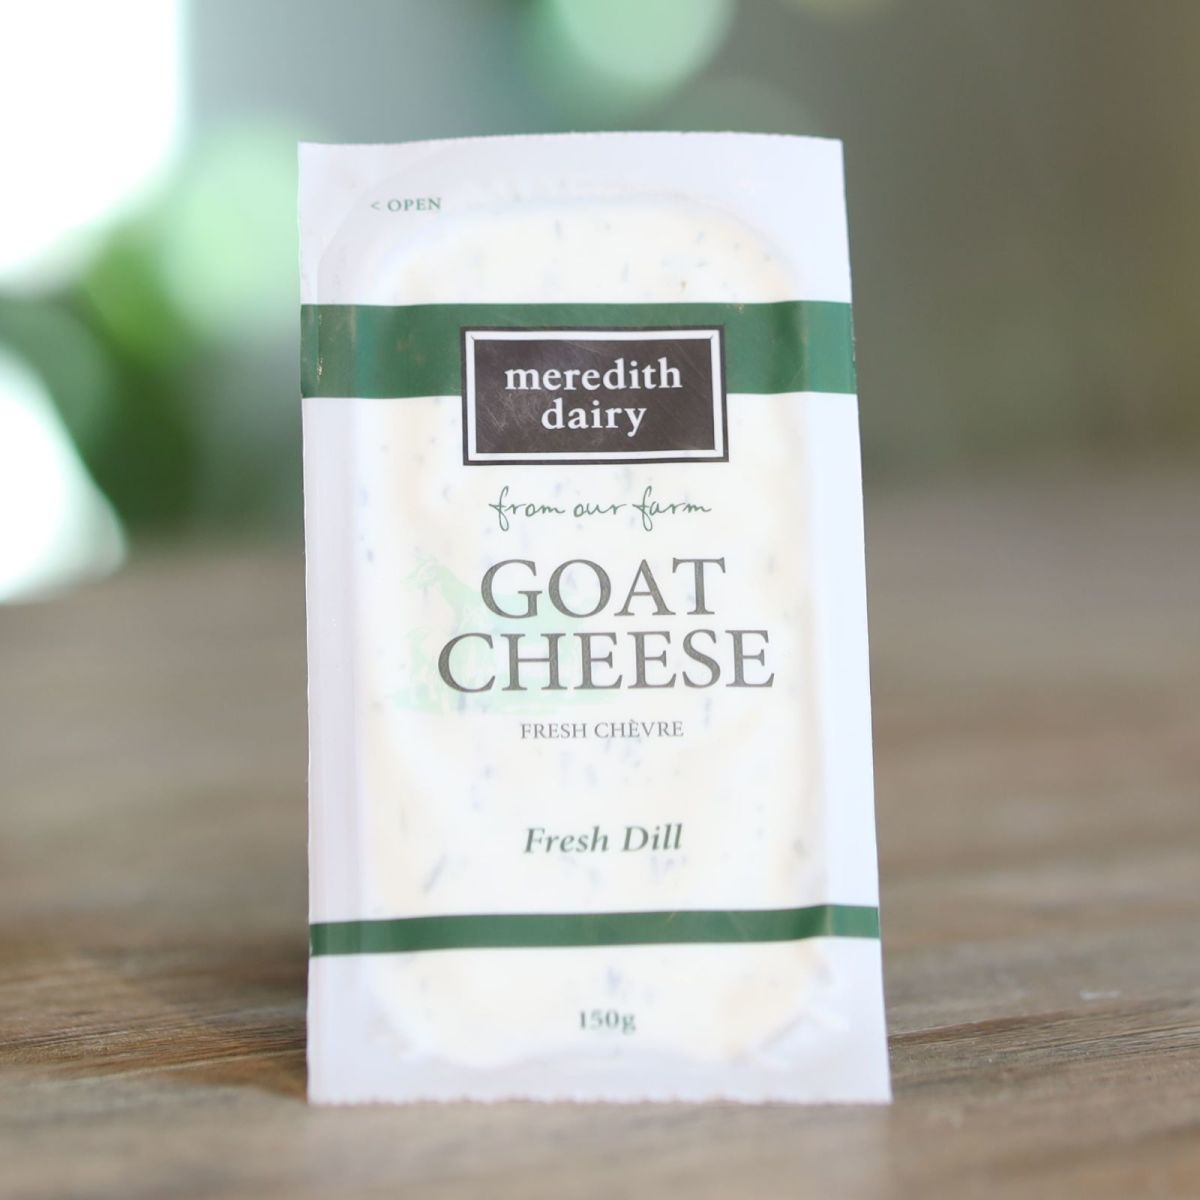 Meredith Dairy - Goat Cheese Fresh Chevre with Dill